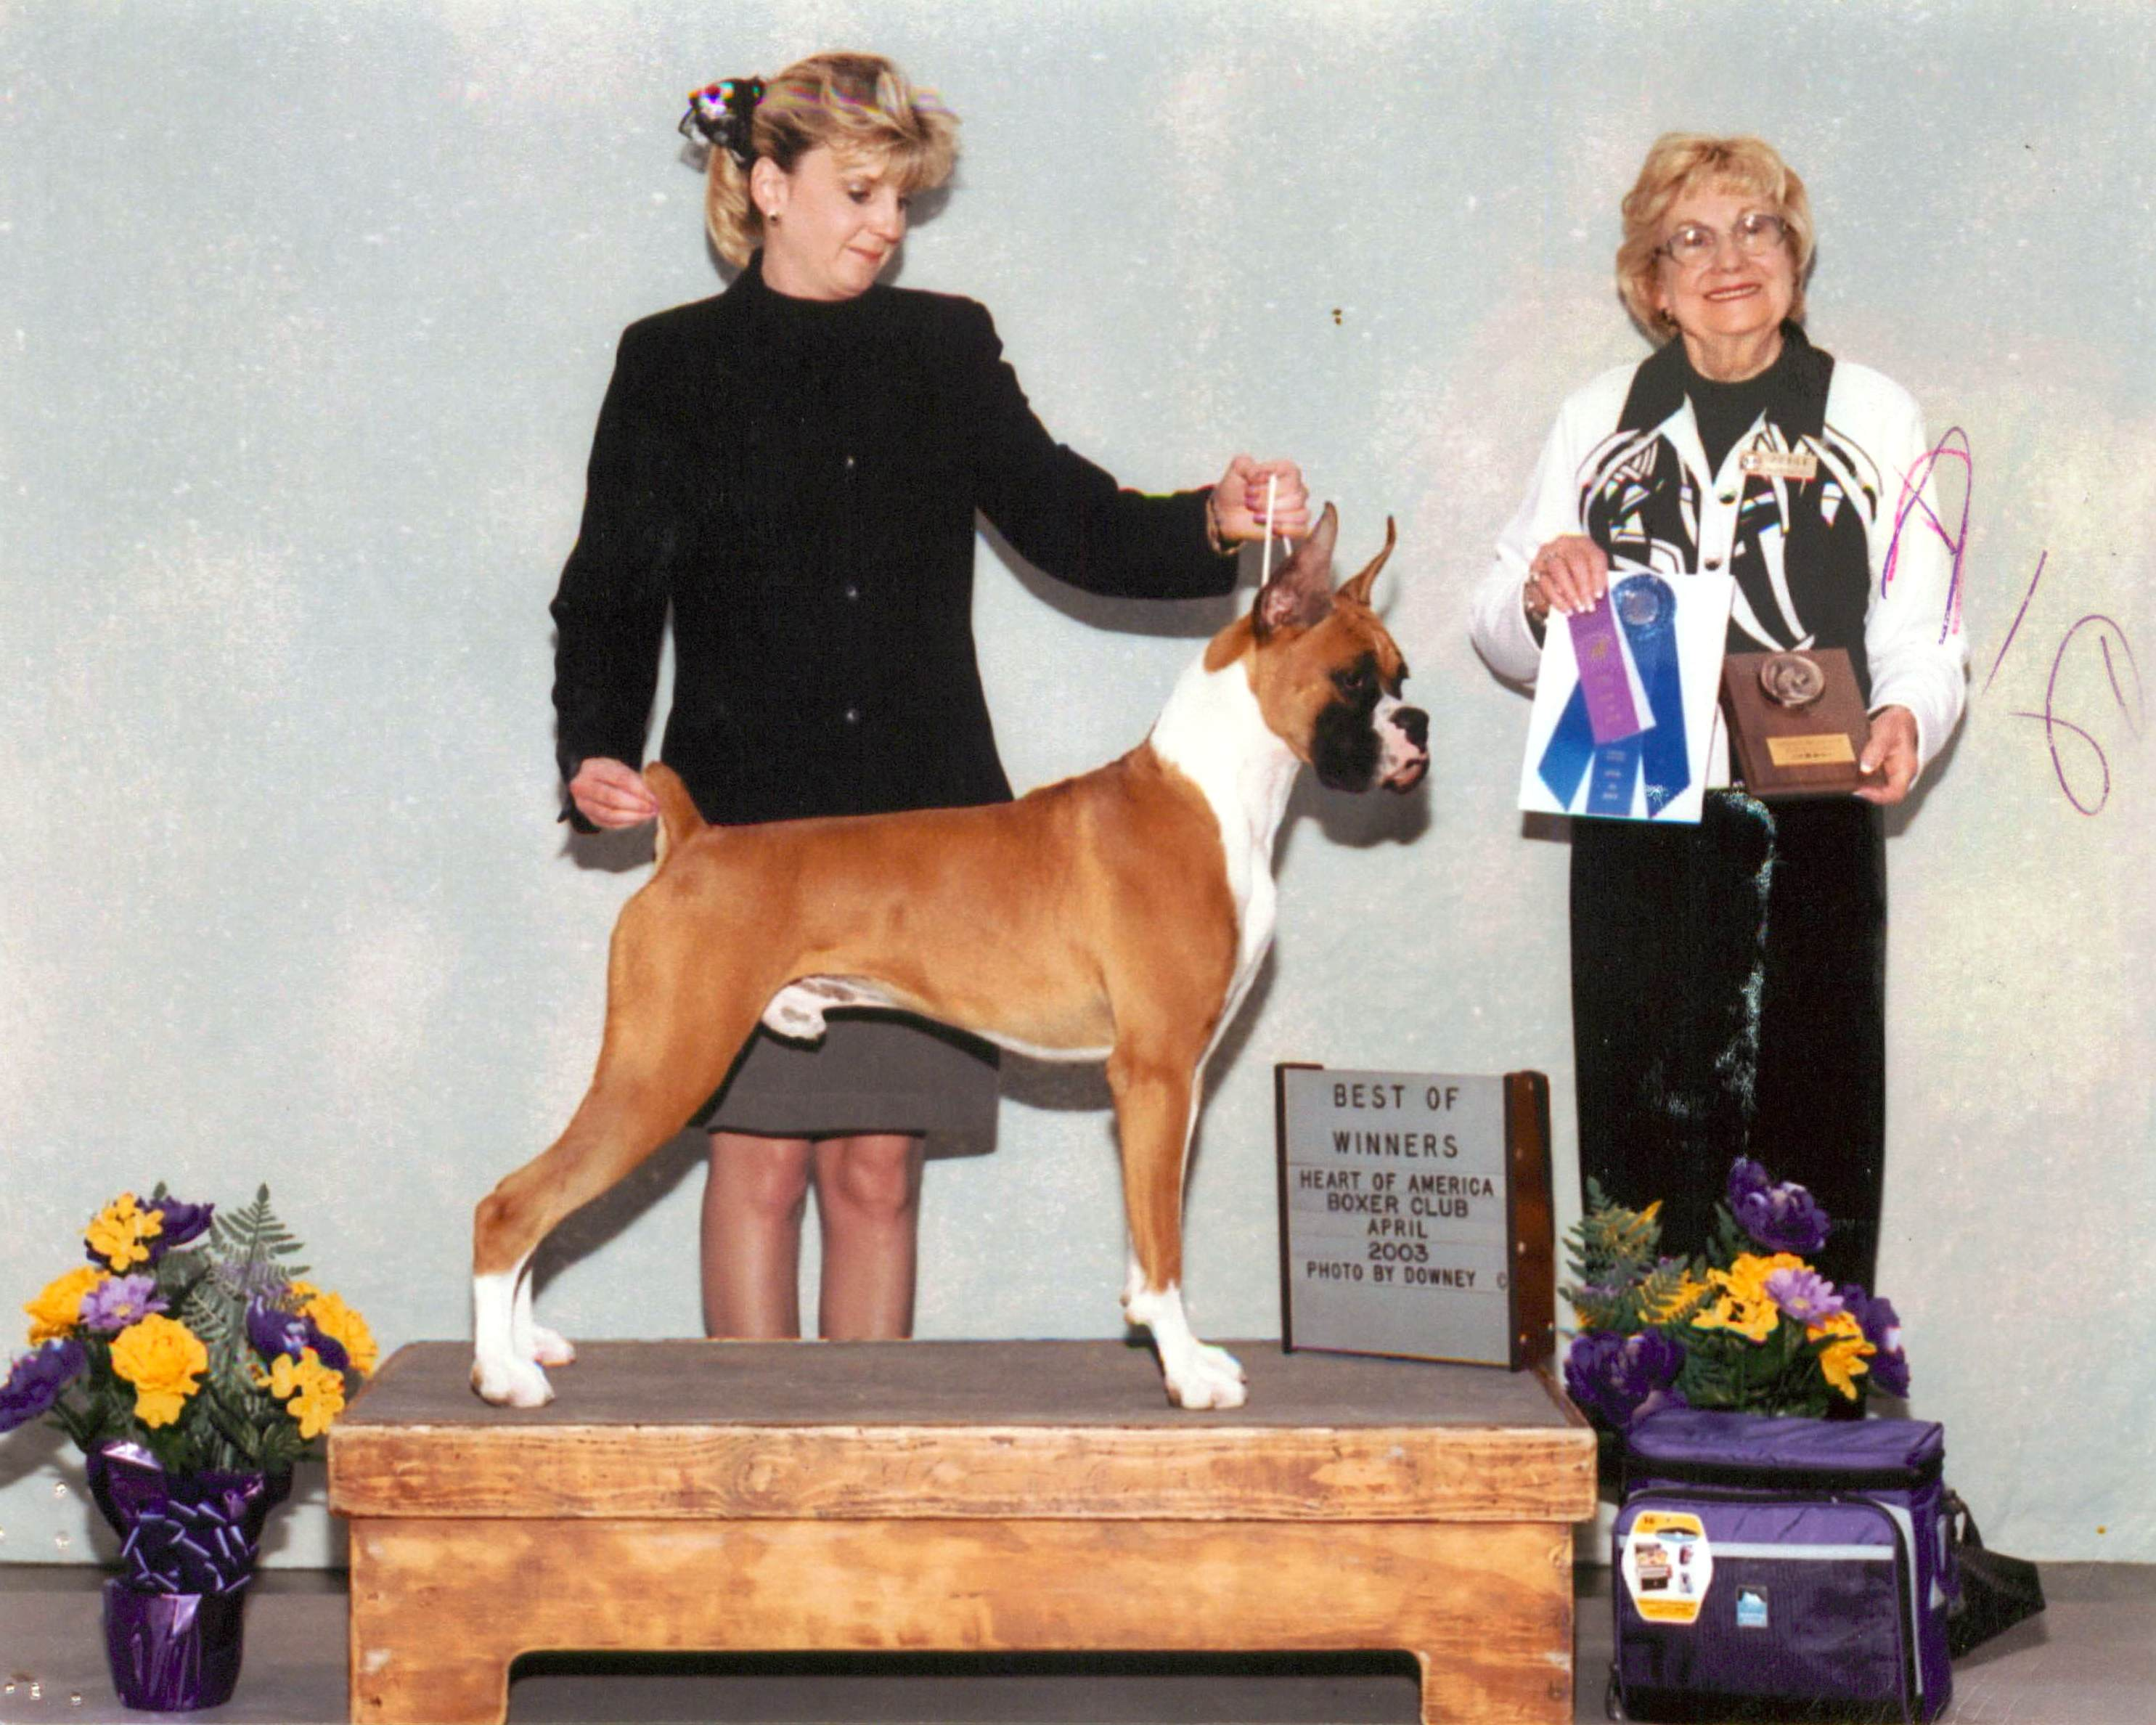 Best of Winners & Winners Dog @ 2003 Specialty Show #1